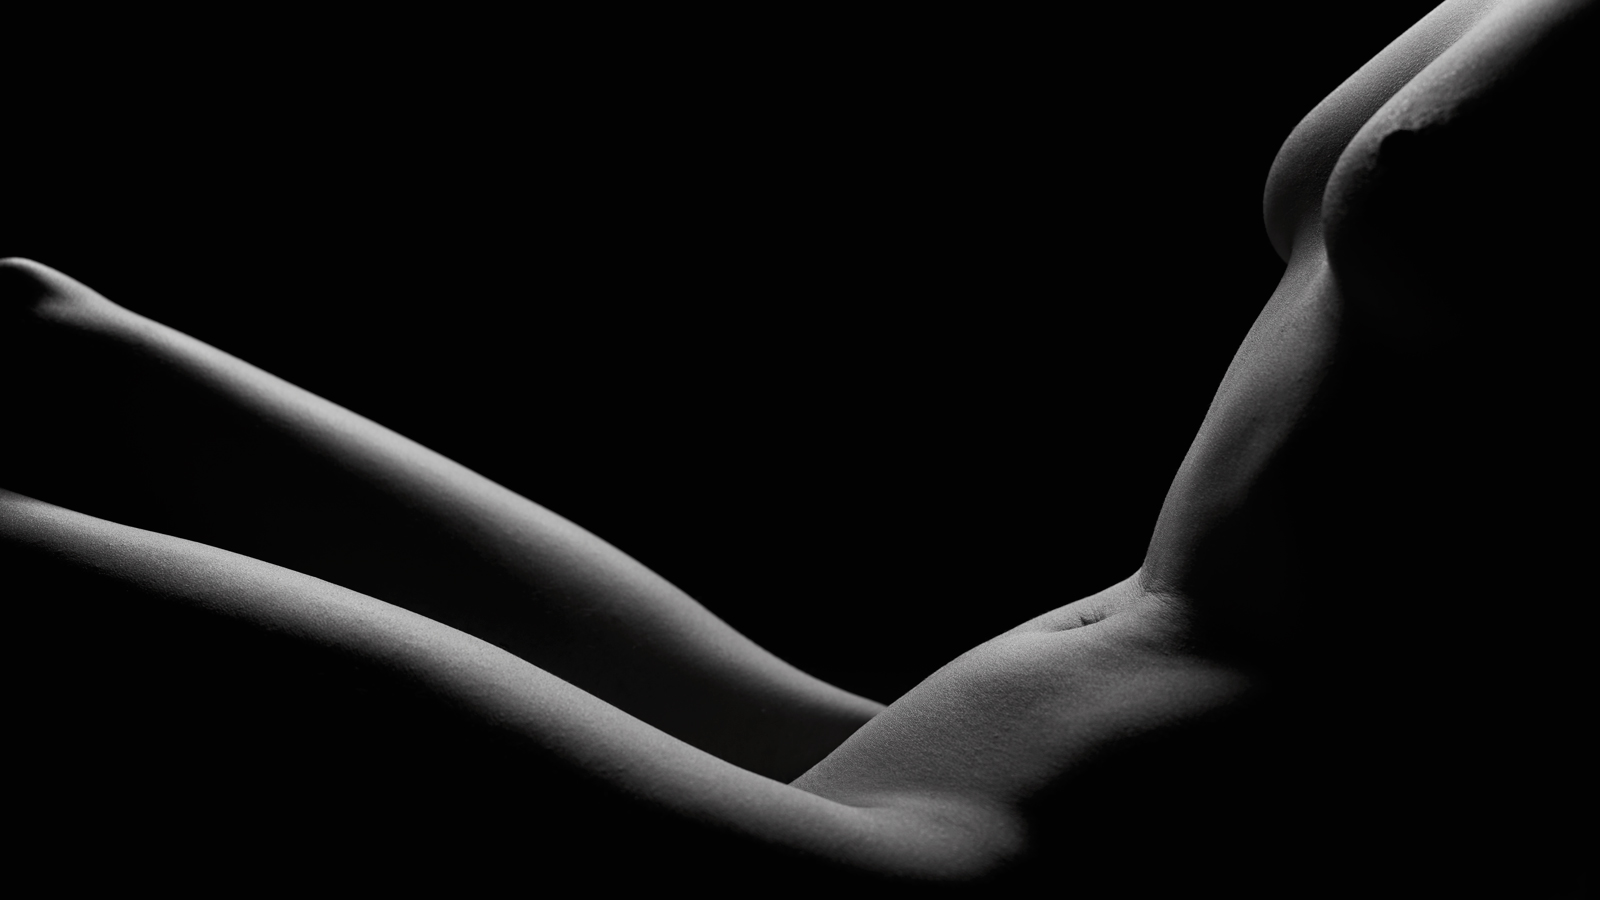 160309_WRBodyscapes_L_096.jpg